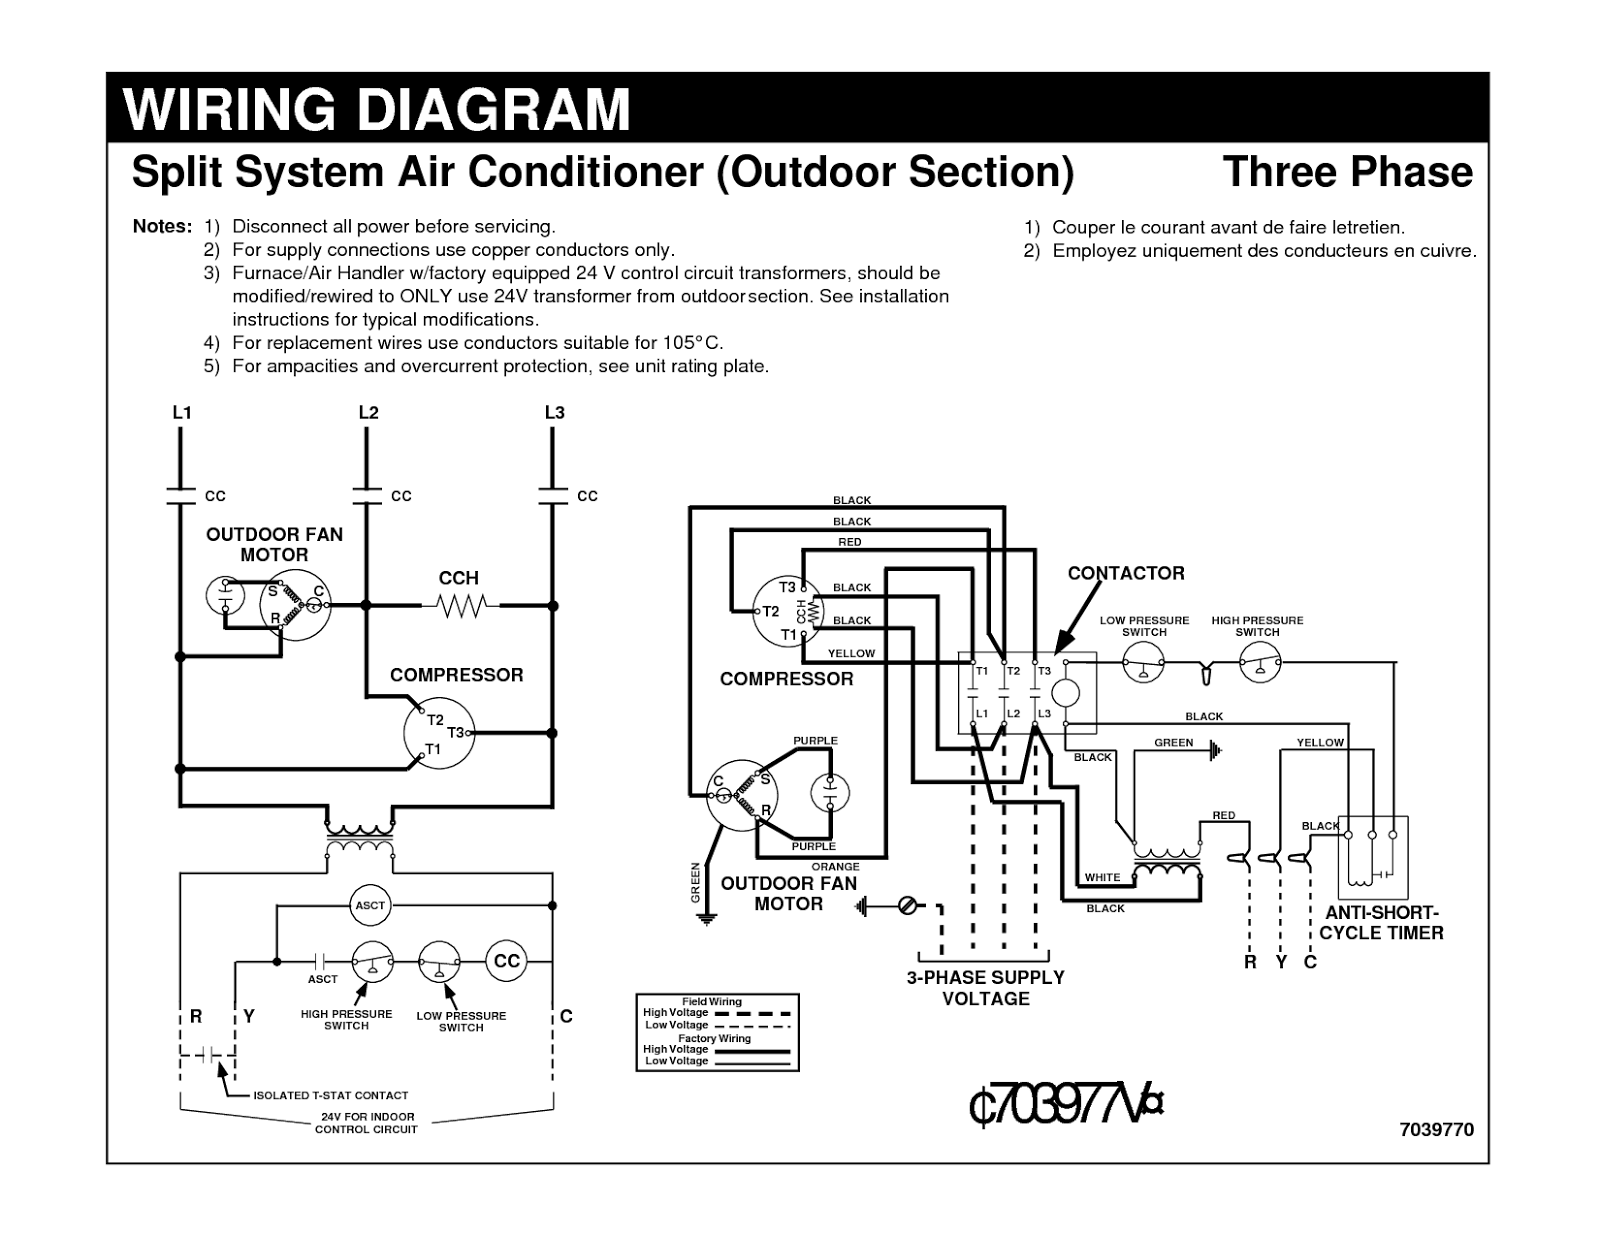 Hvac Wiring Schematic Exercises - Peterbilt 387 Fuse Box Location -  subaruoutback.los-dodol.jeanjaures37.fr | Hvac Wiring Schematic Exercises |  | Wiring Diagram Resource